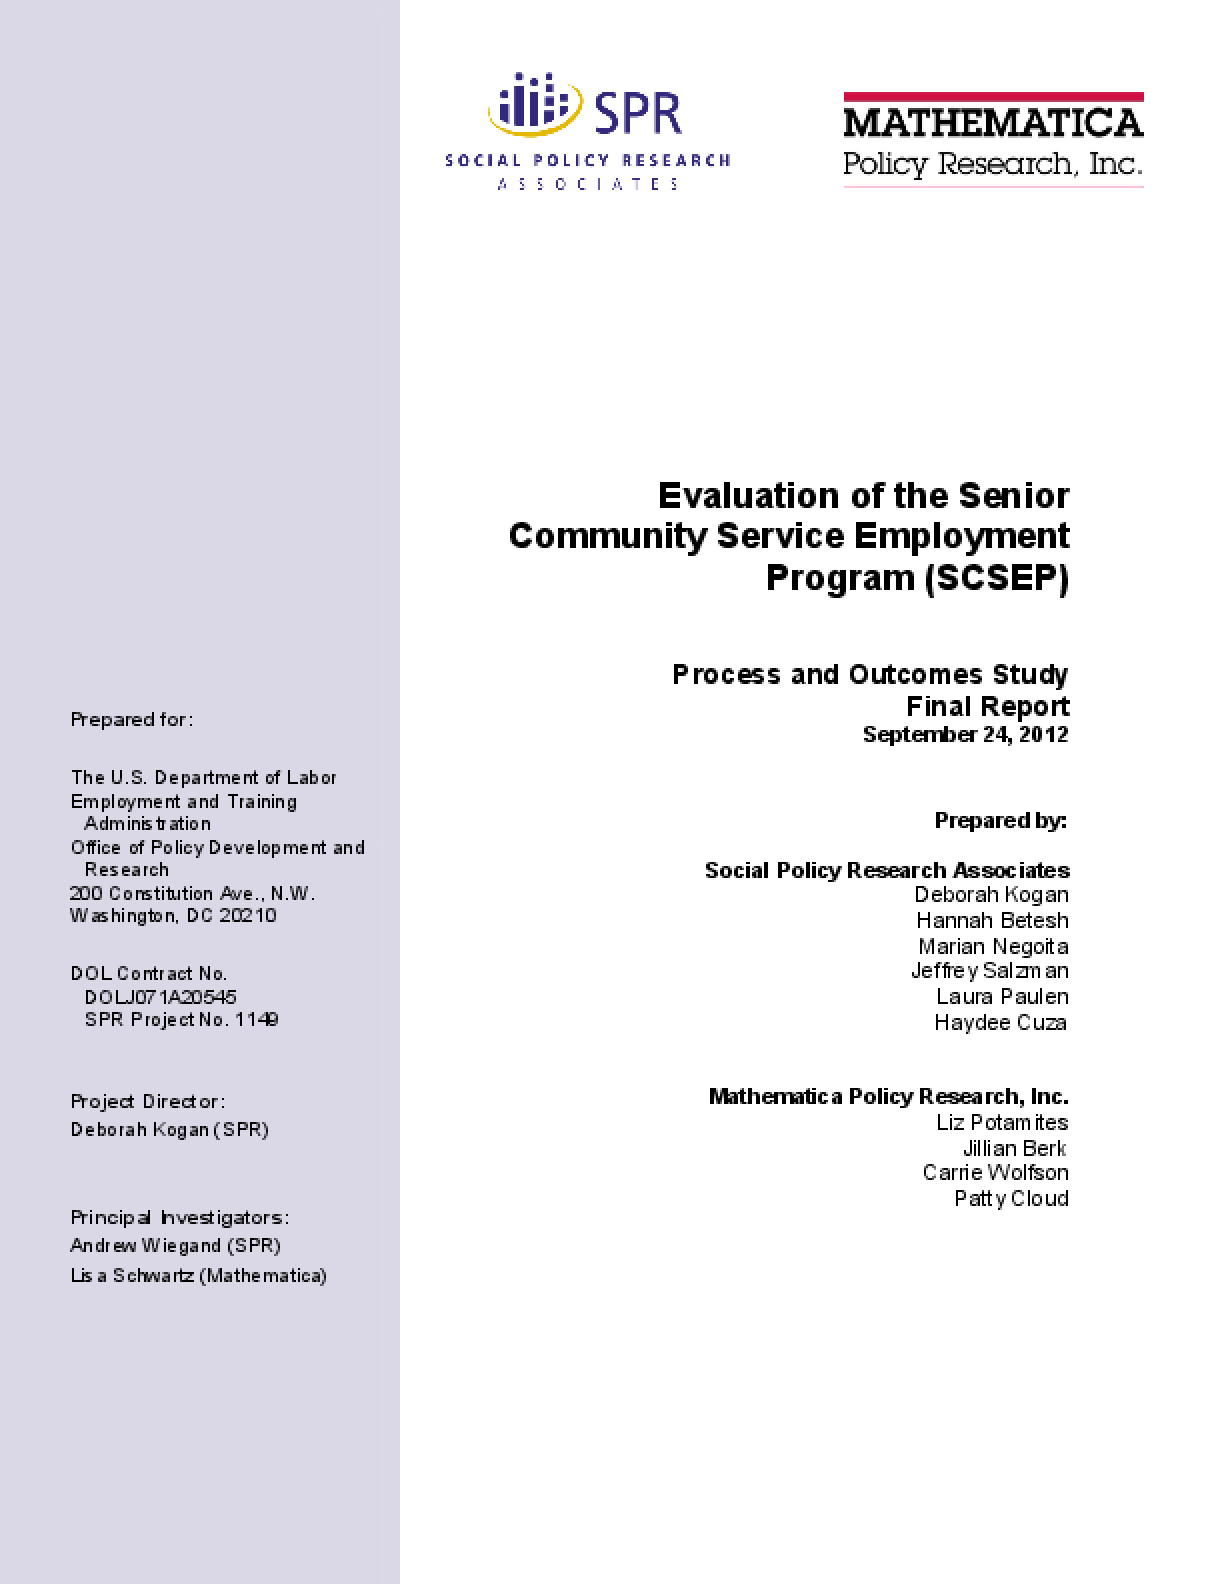 Evaluation of the Senior Community Service Employment Program (SCSEP)